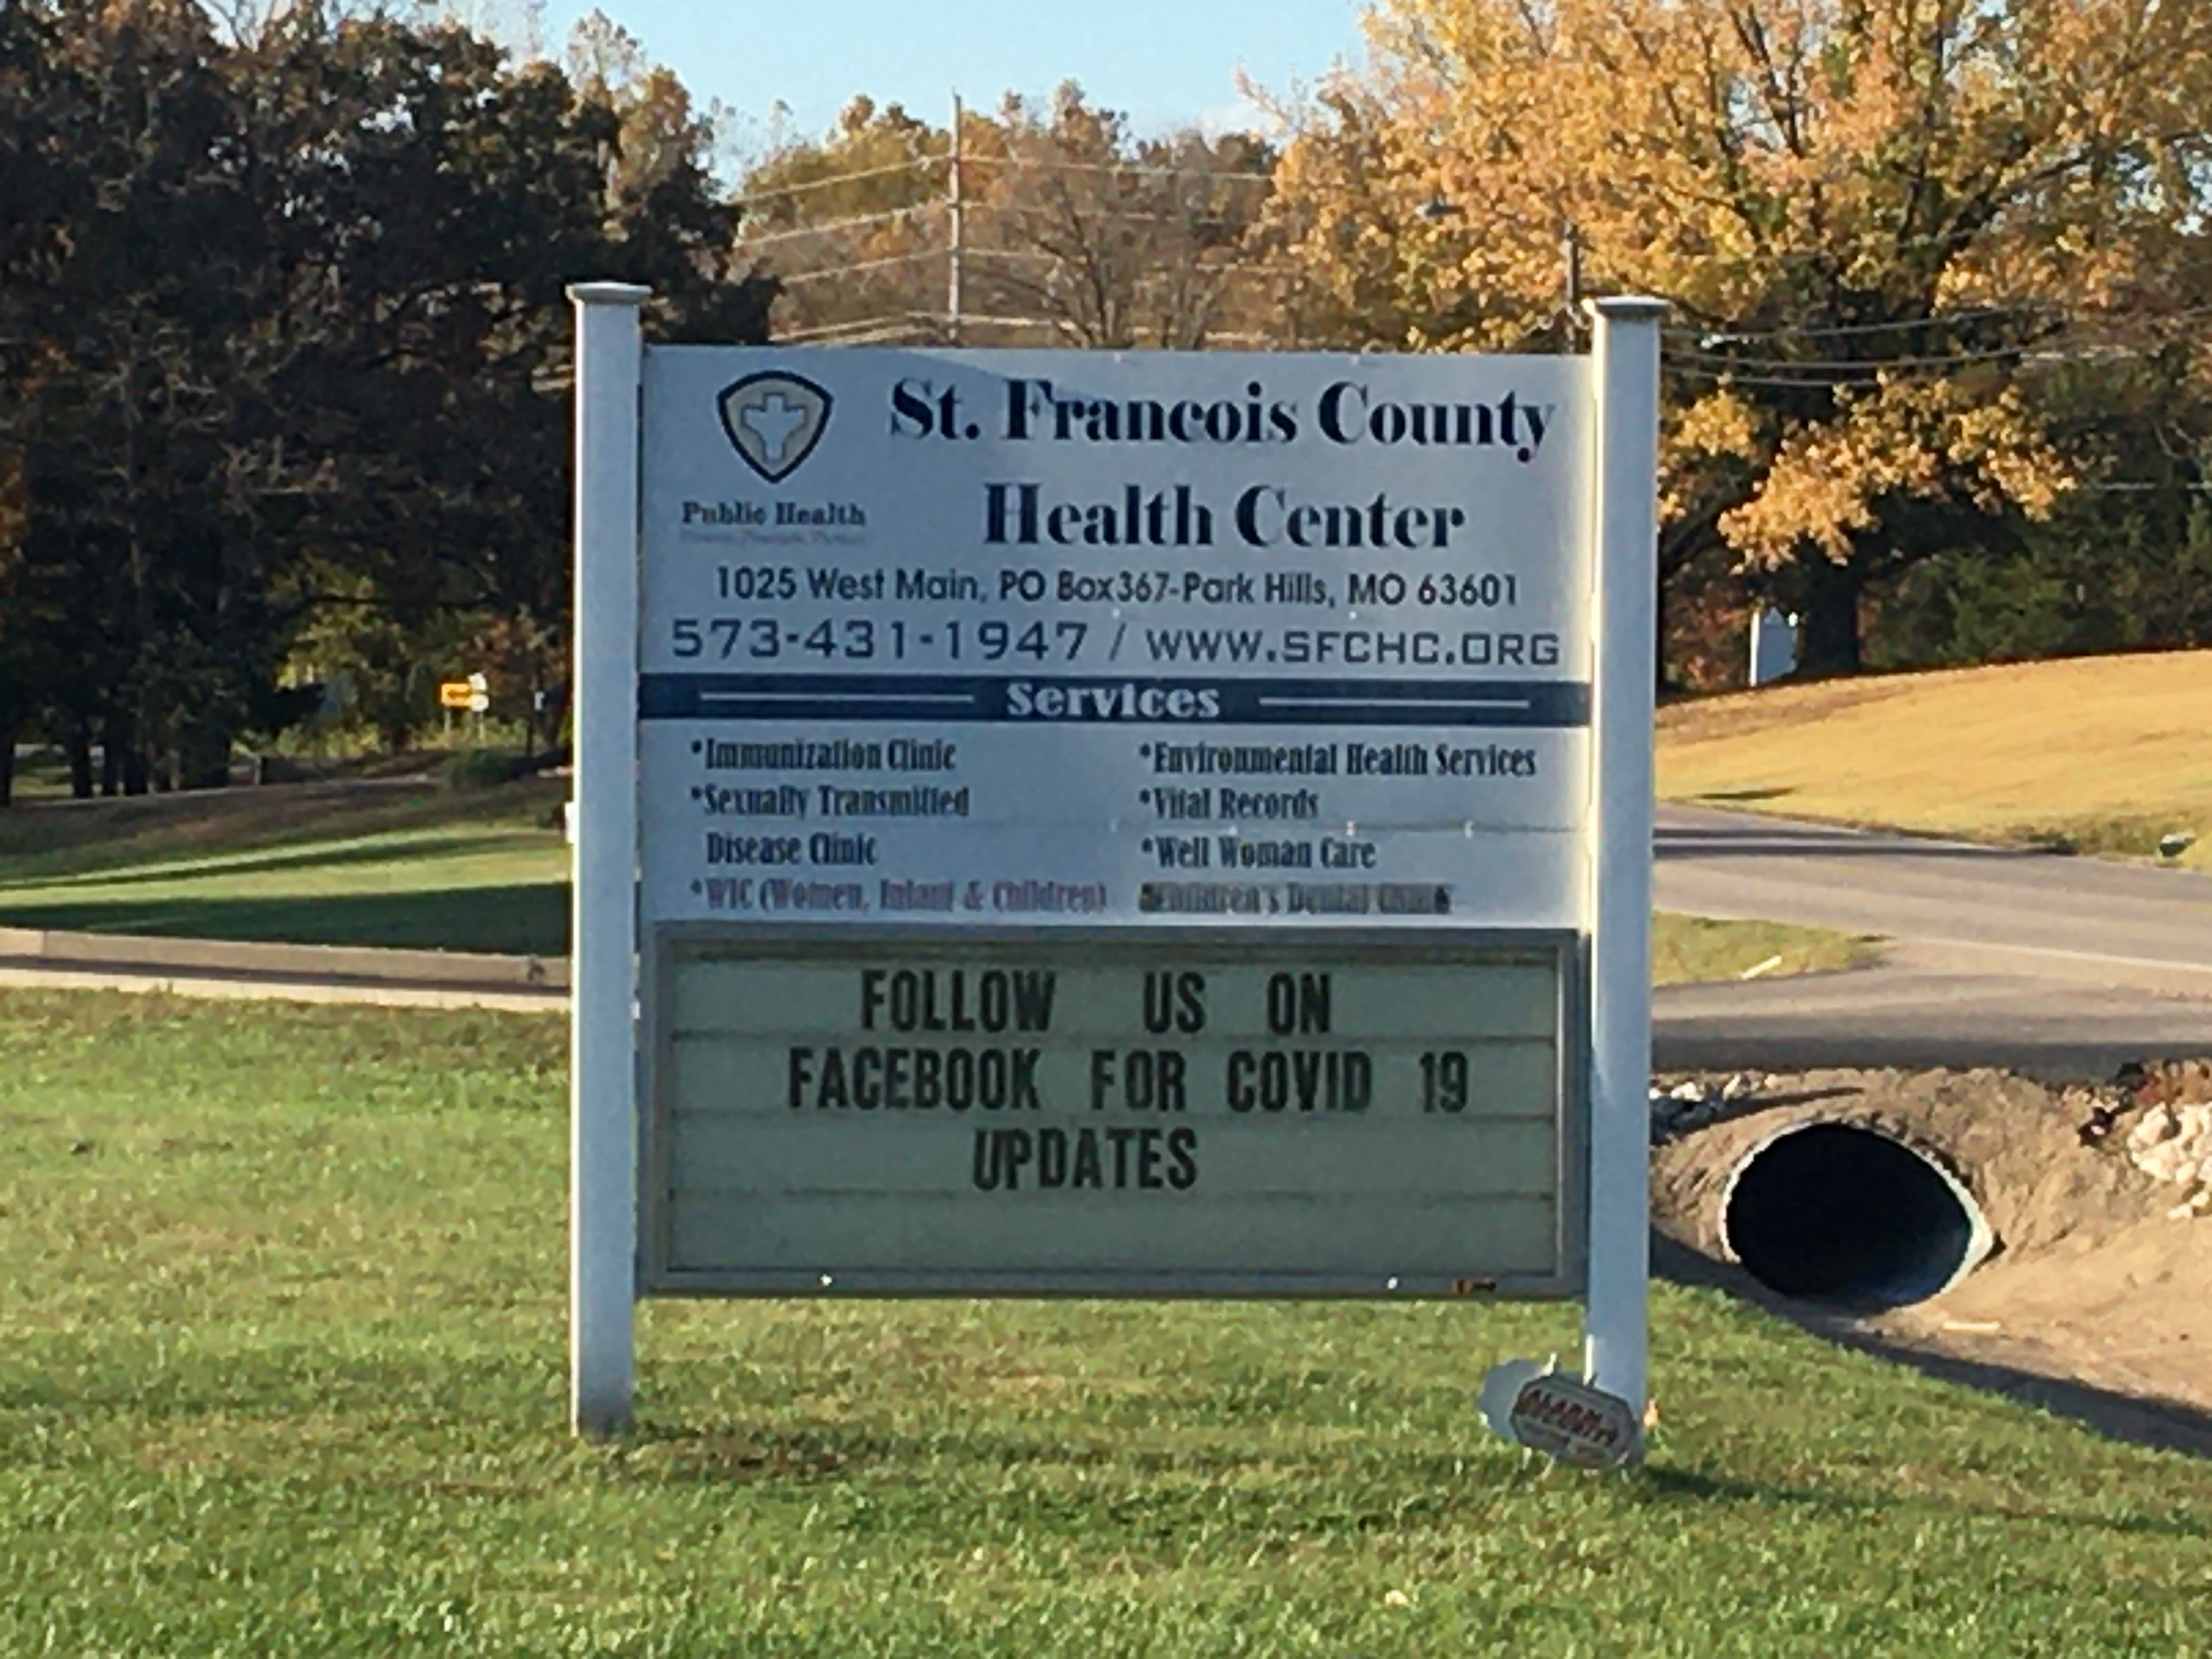 St. Francois County Health Center Vaccinations